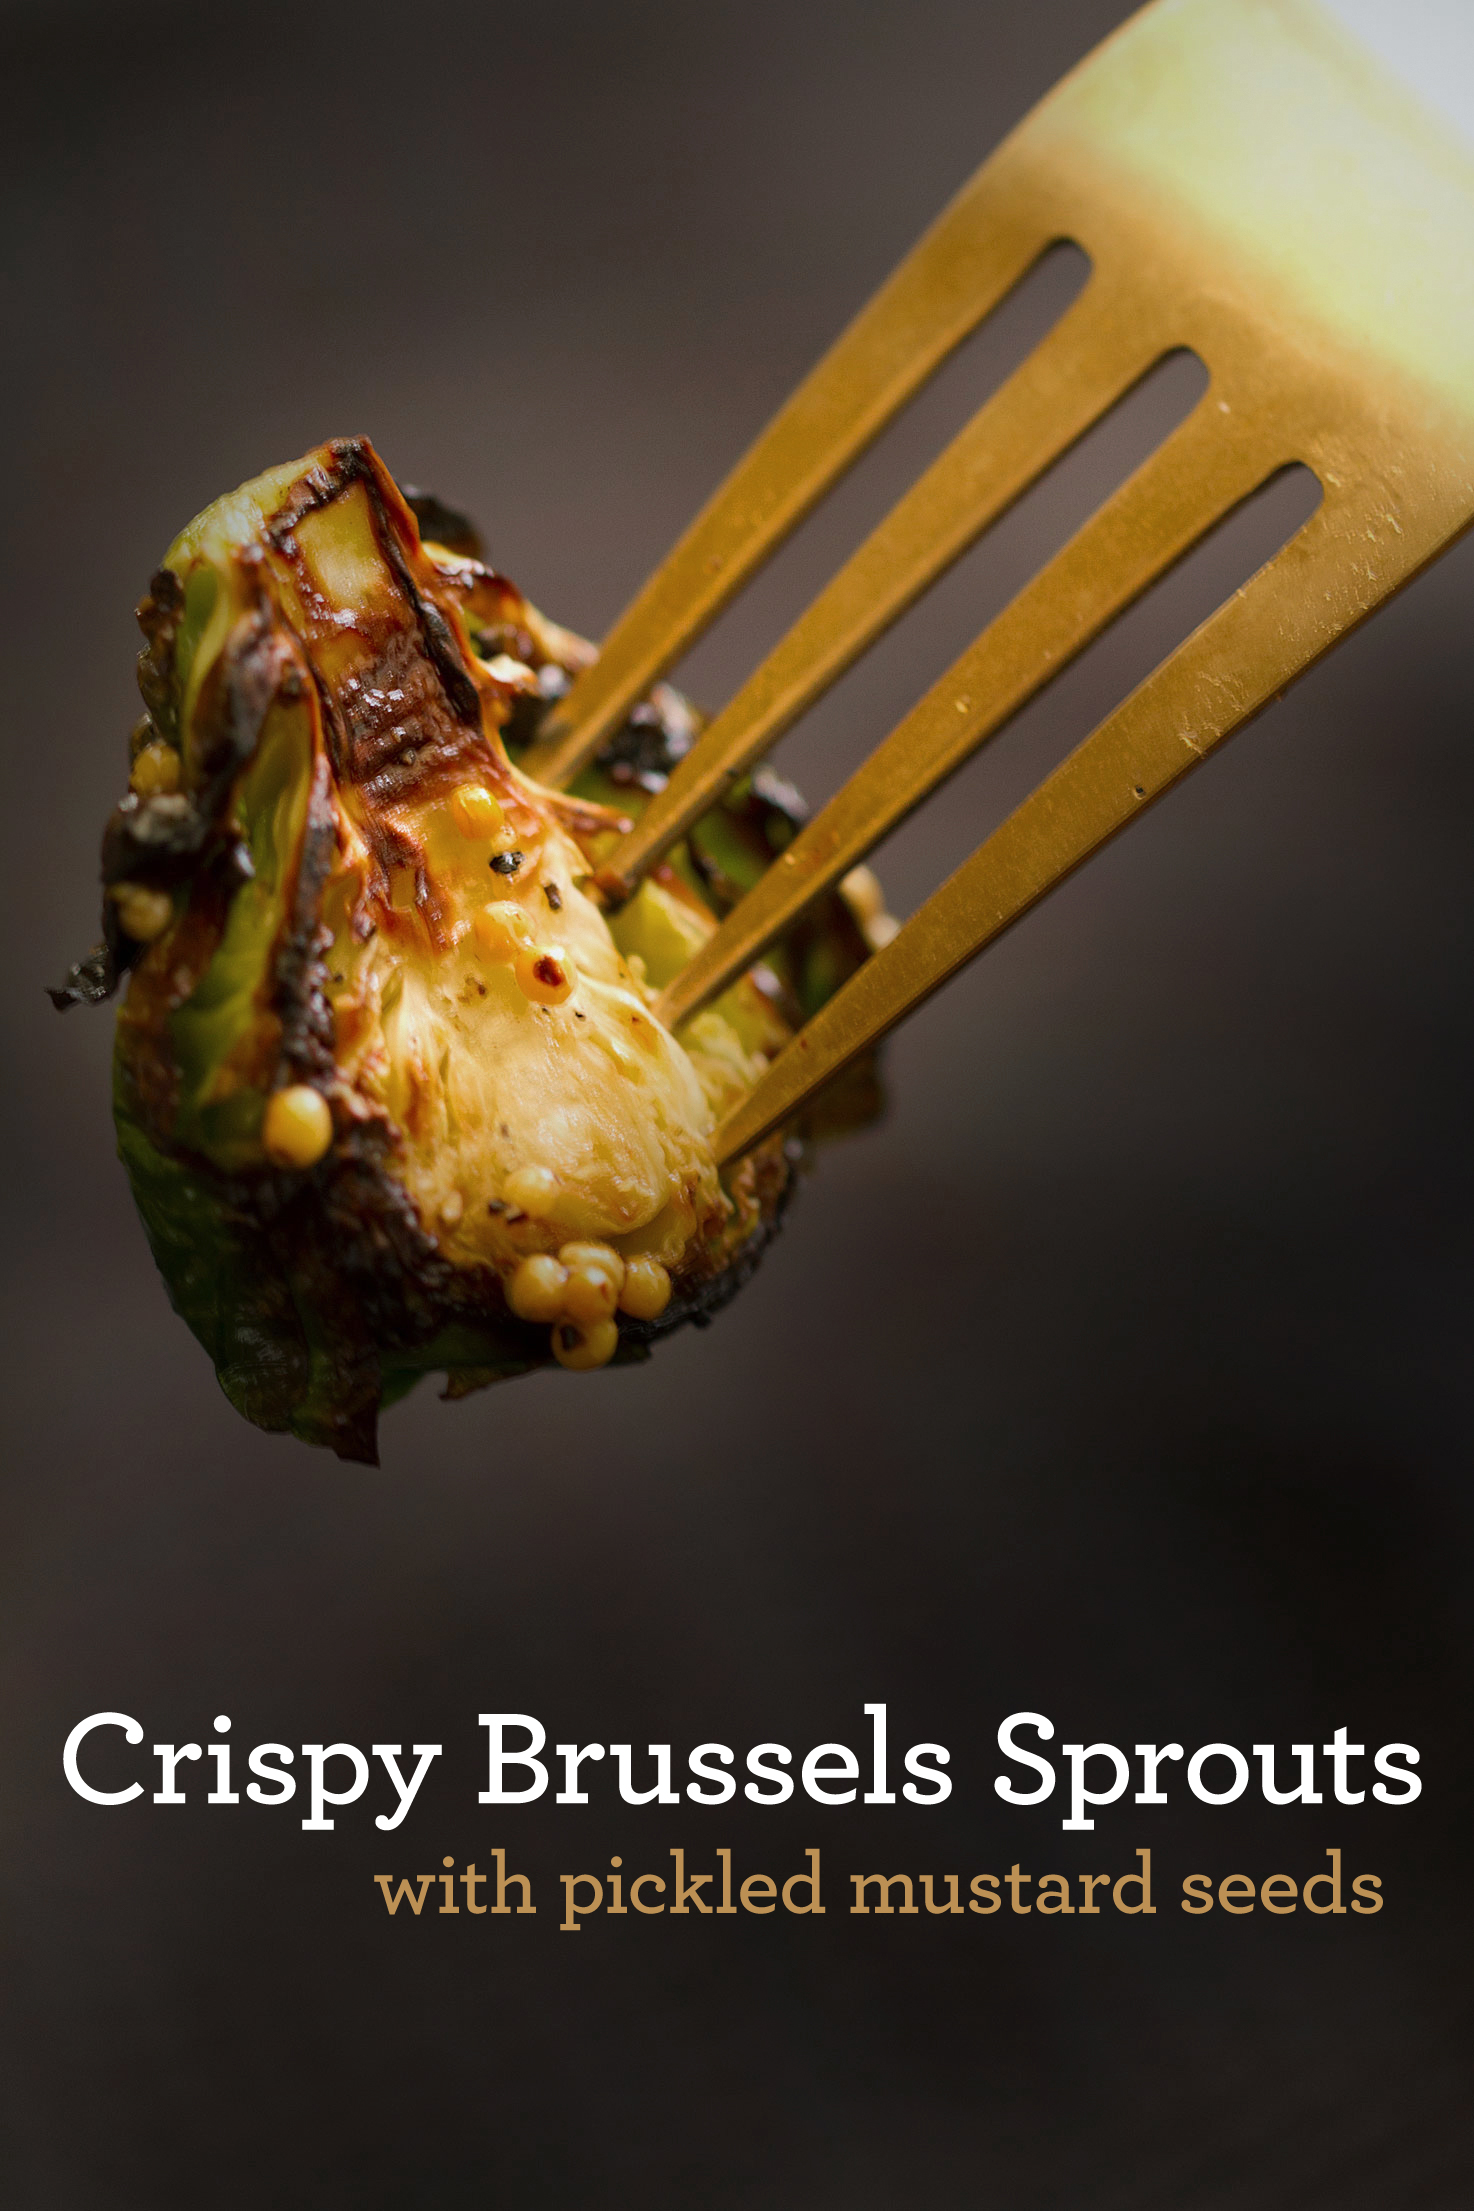 Crispy Brussels Sprouts with Pickled Mustard Seeds